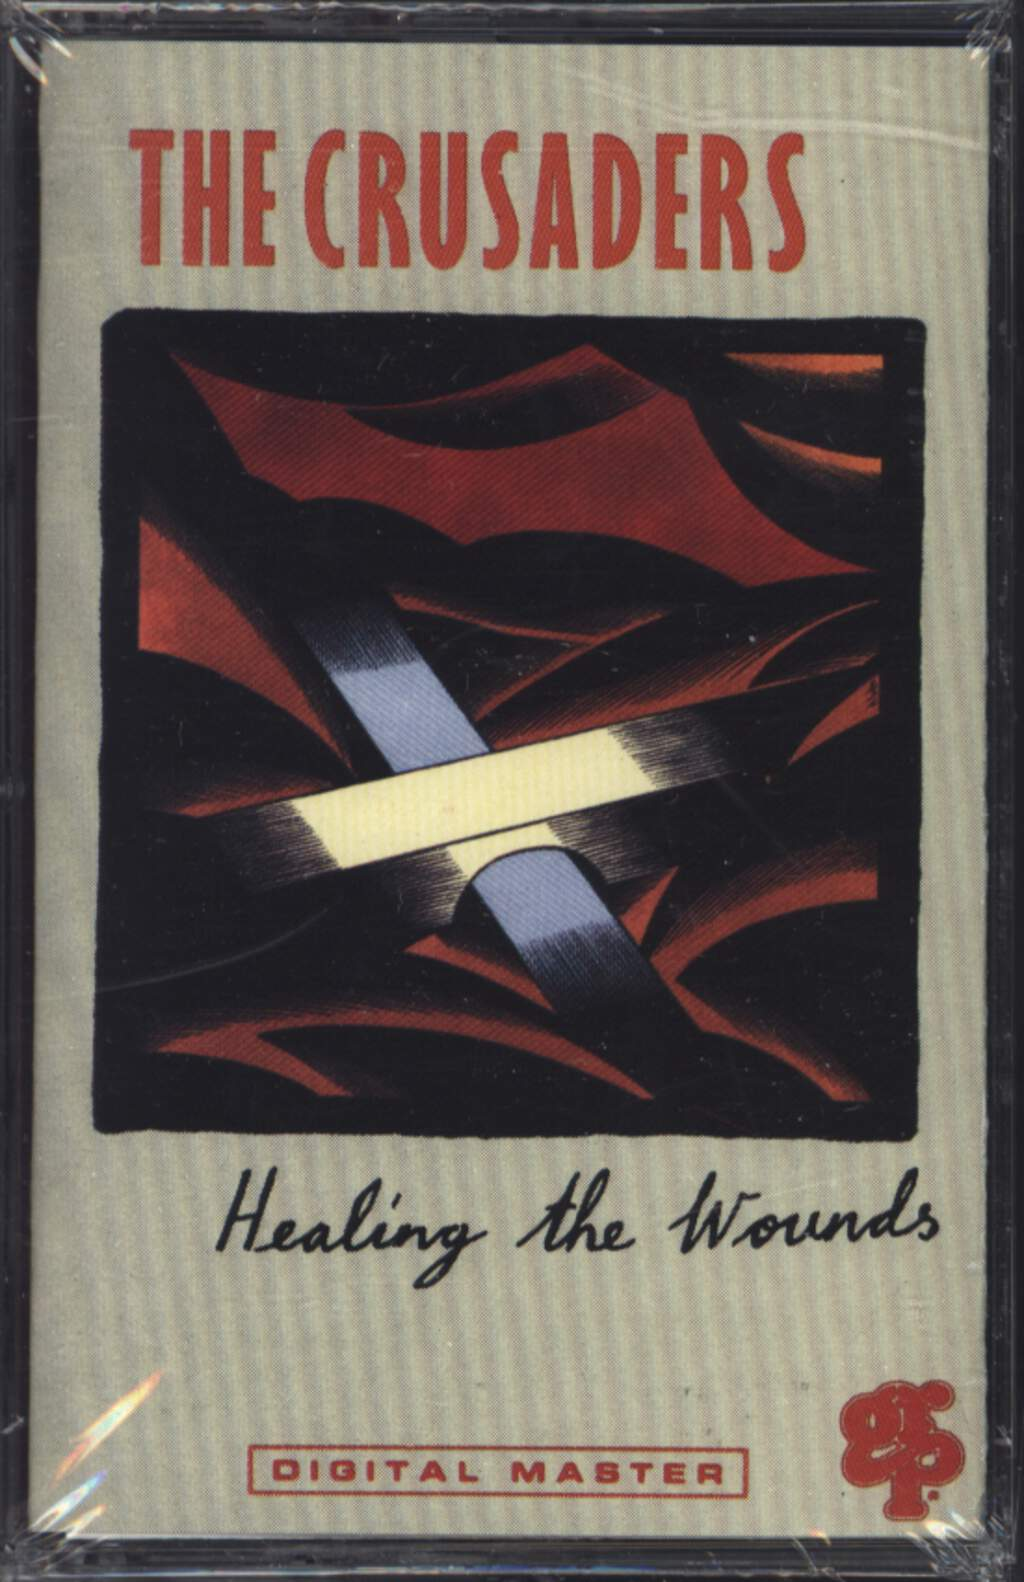 The Crusaders: Healing The Wounds, Compact Cassette